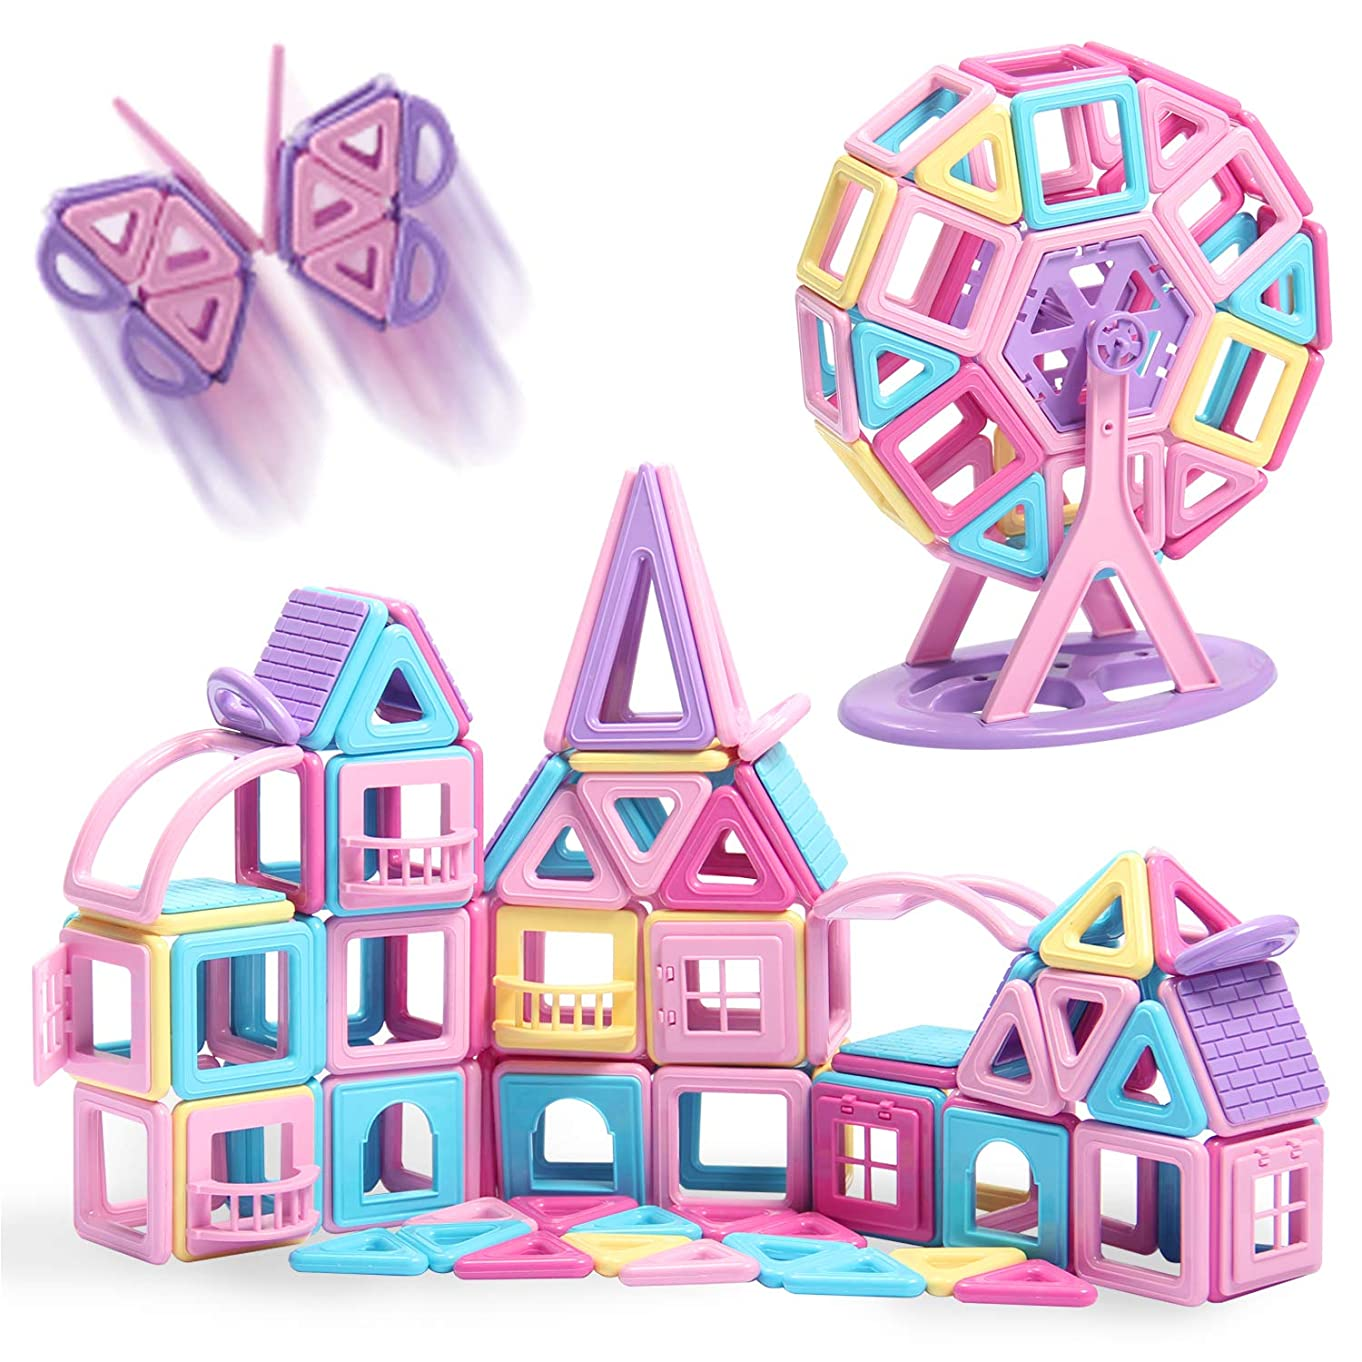 HOMOFY 124PCS Castle Magnetic Blocks Toys for Kids -3D Macaron Colors Learning & Development Building Blocks Figure Kits Toys for 2 3 4 5 6 Years Old Girls Boys Toddlers